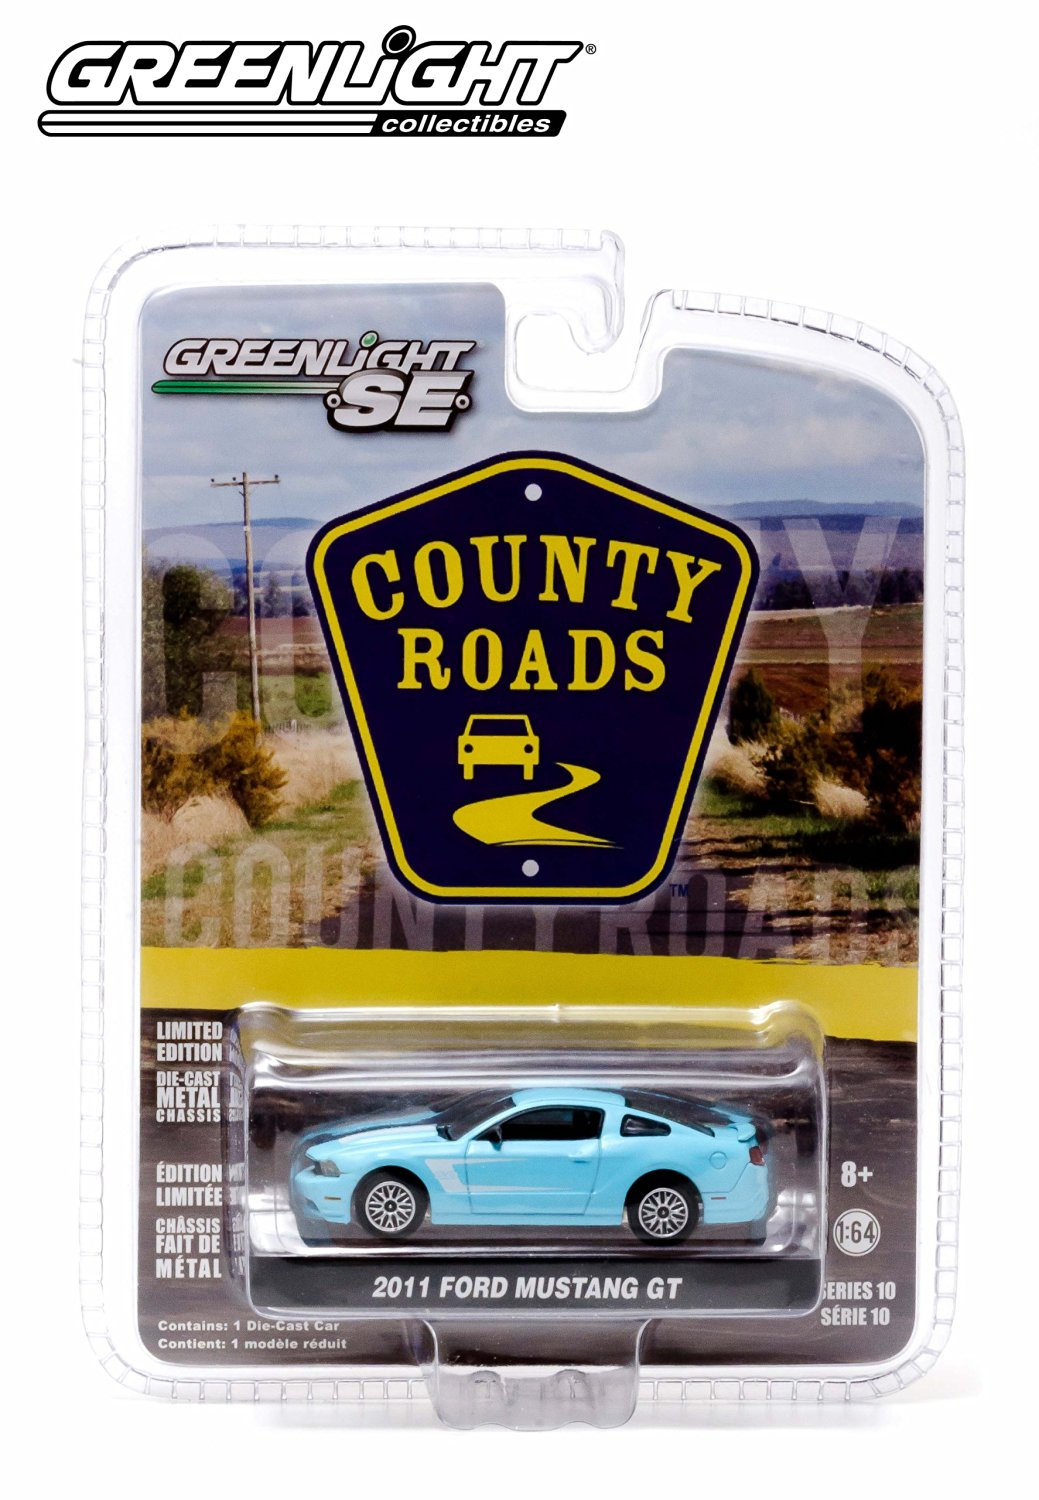 2011 Ford Mustang GT * County Roads Series 10 * 2014 Greenlight 1:64 Scale Limited Edition Die-Cast Vehicle